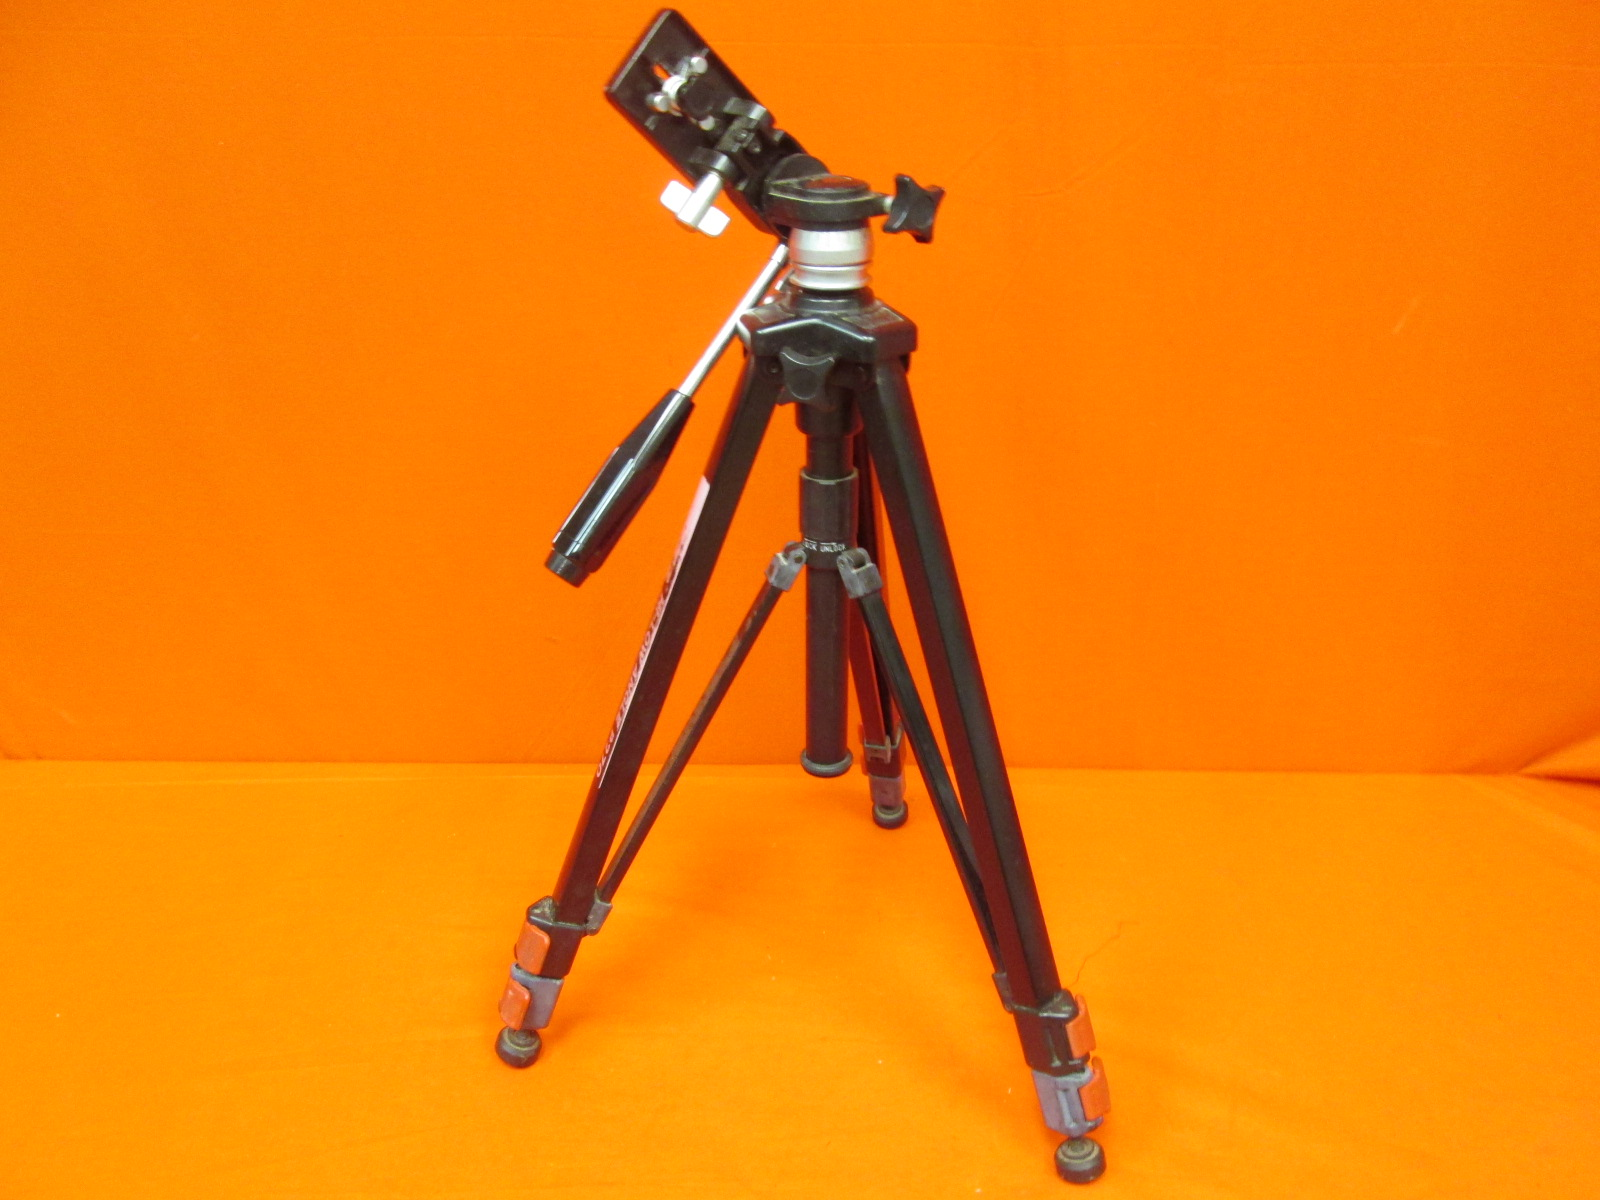 Stitz P270 Hi-Low Angle Brace Tripod With Locking Device For Cameras